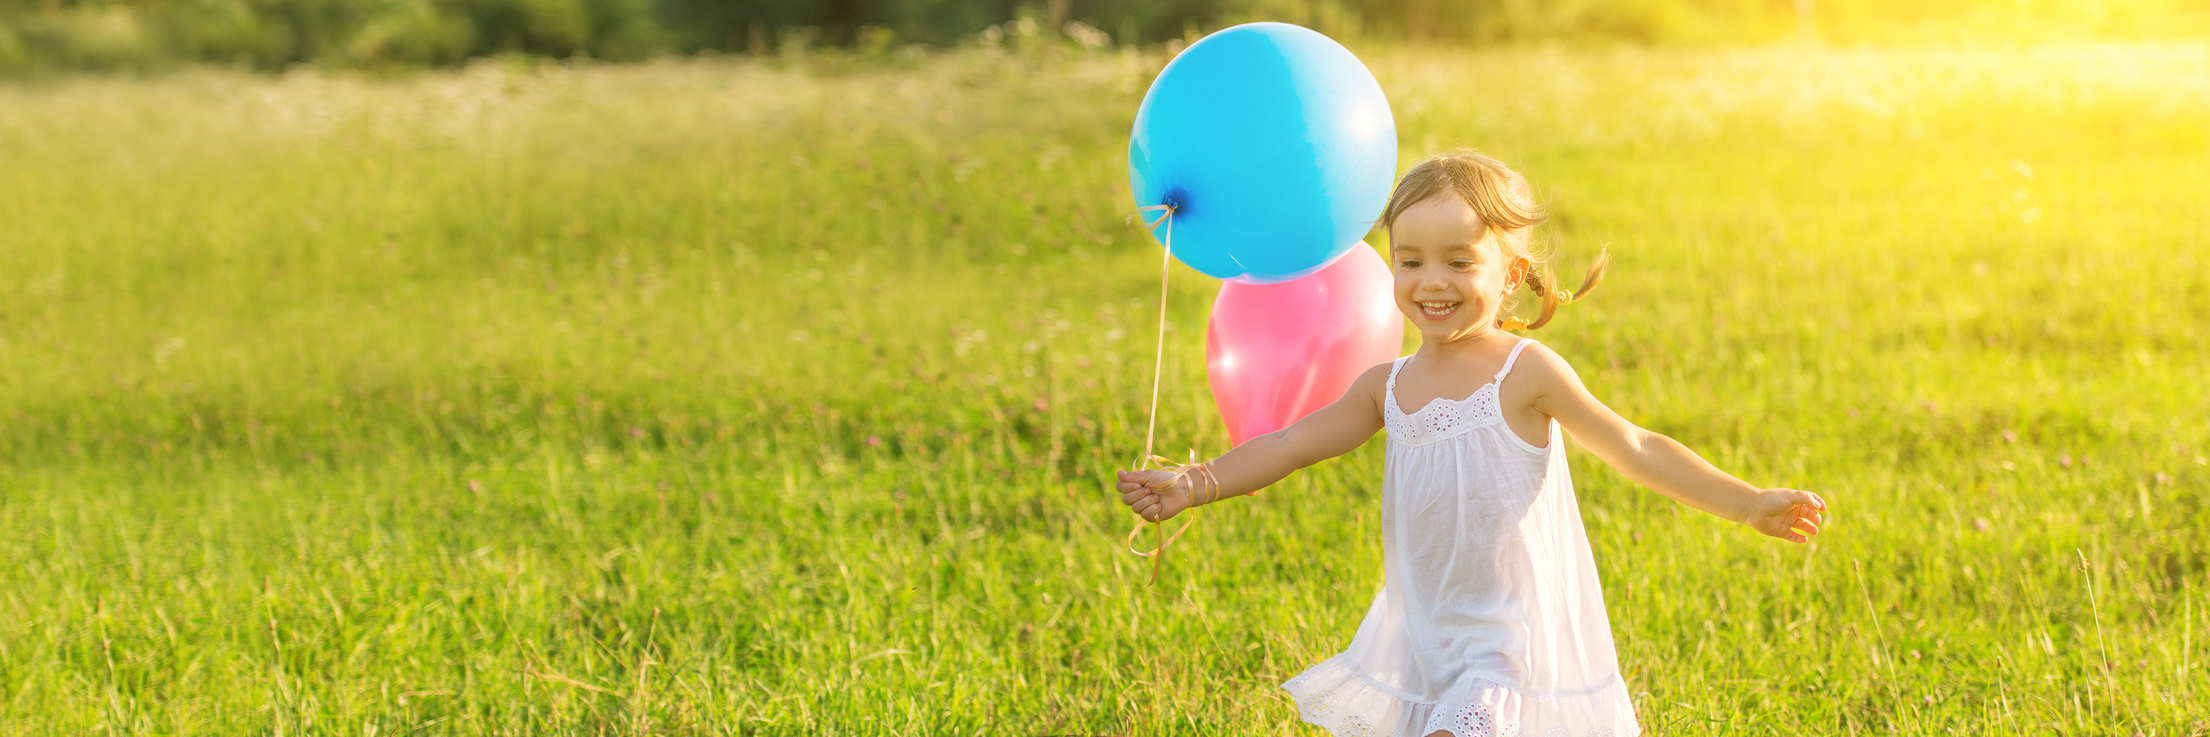 young girl laughing and running through a field with balloons